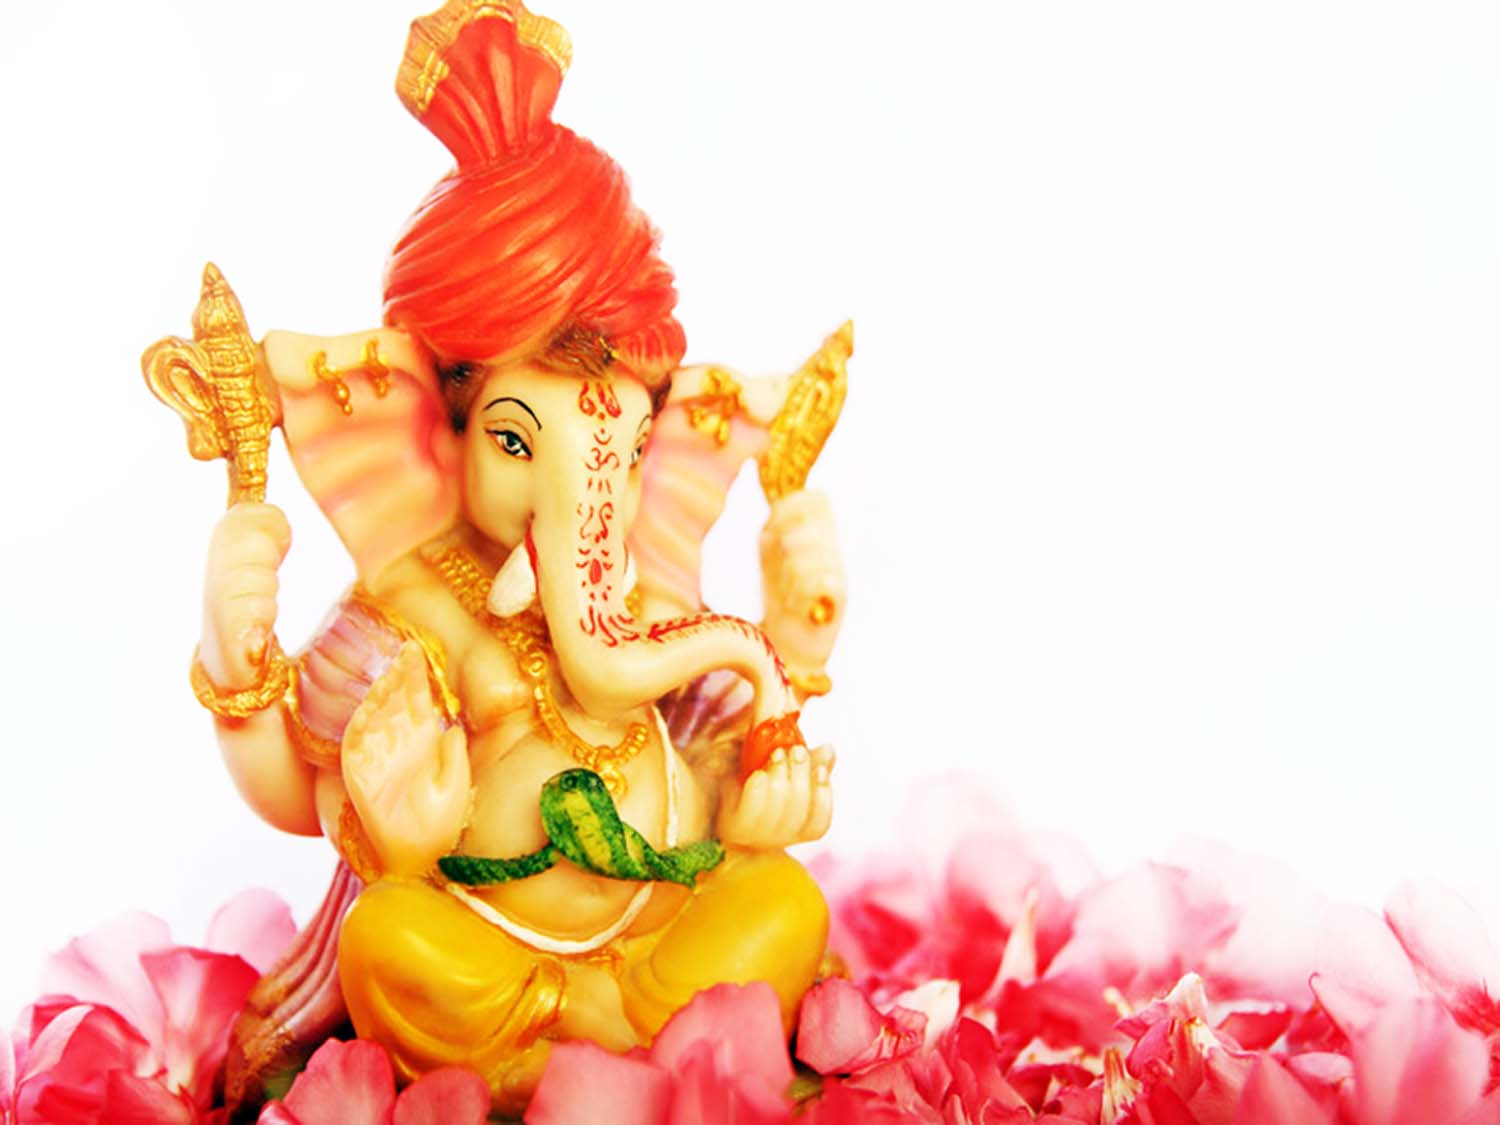 Cute Ganesha for happy vinayaka chaturthi